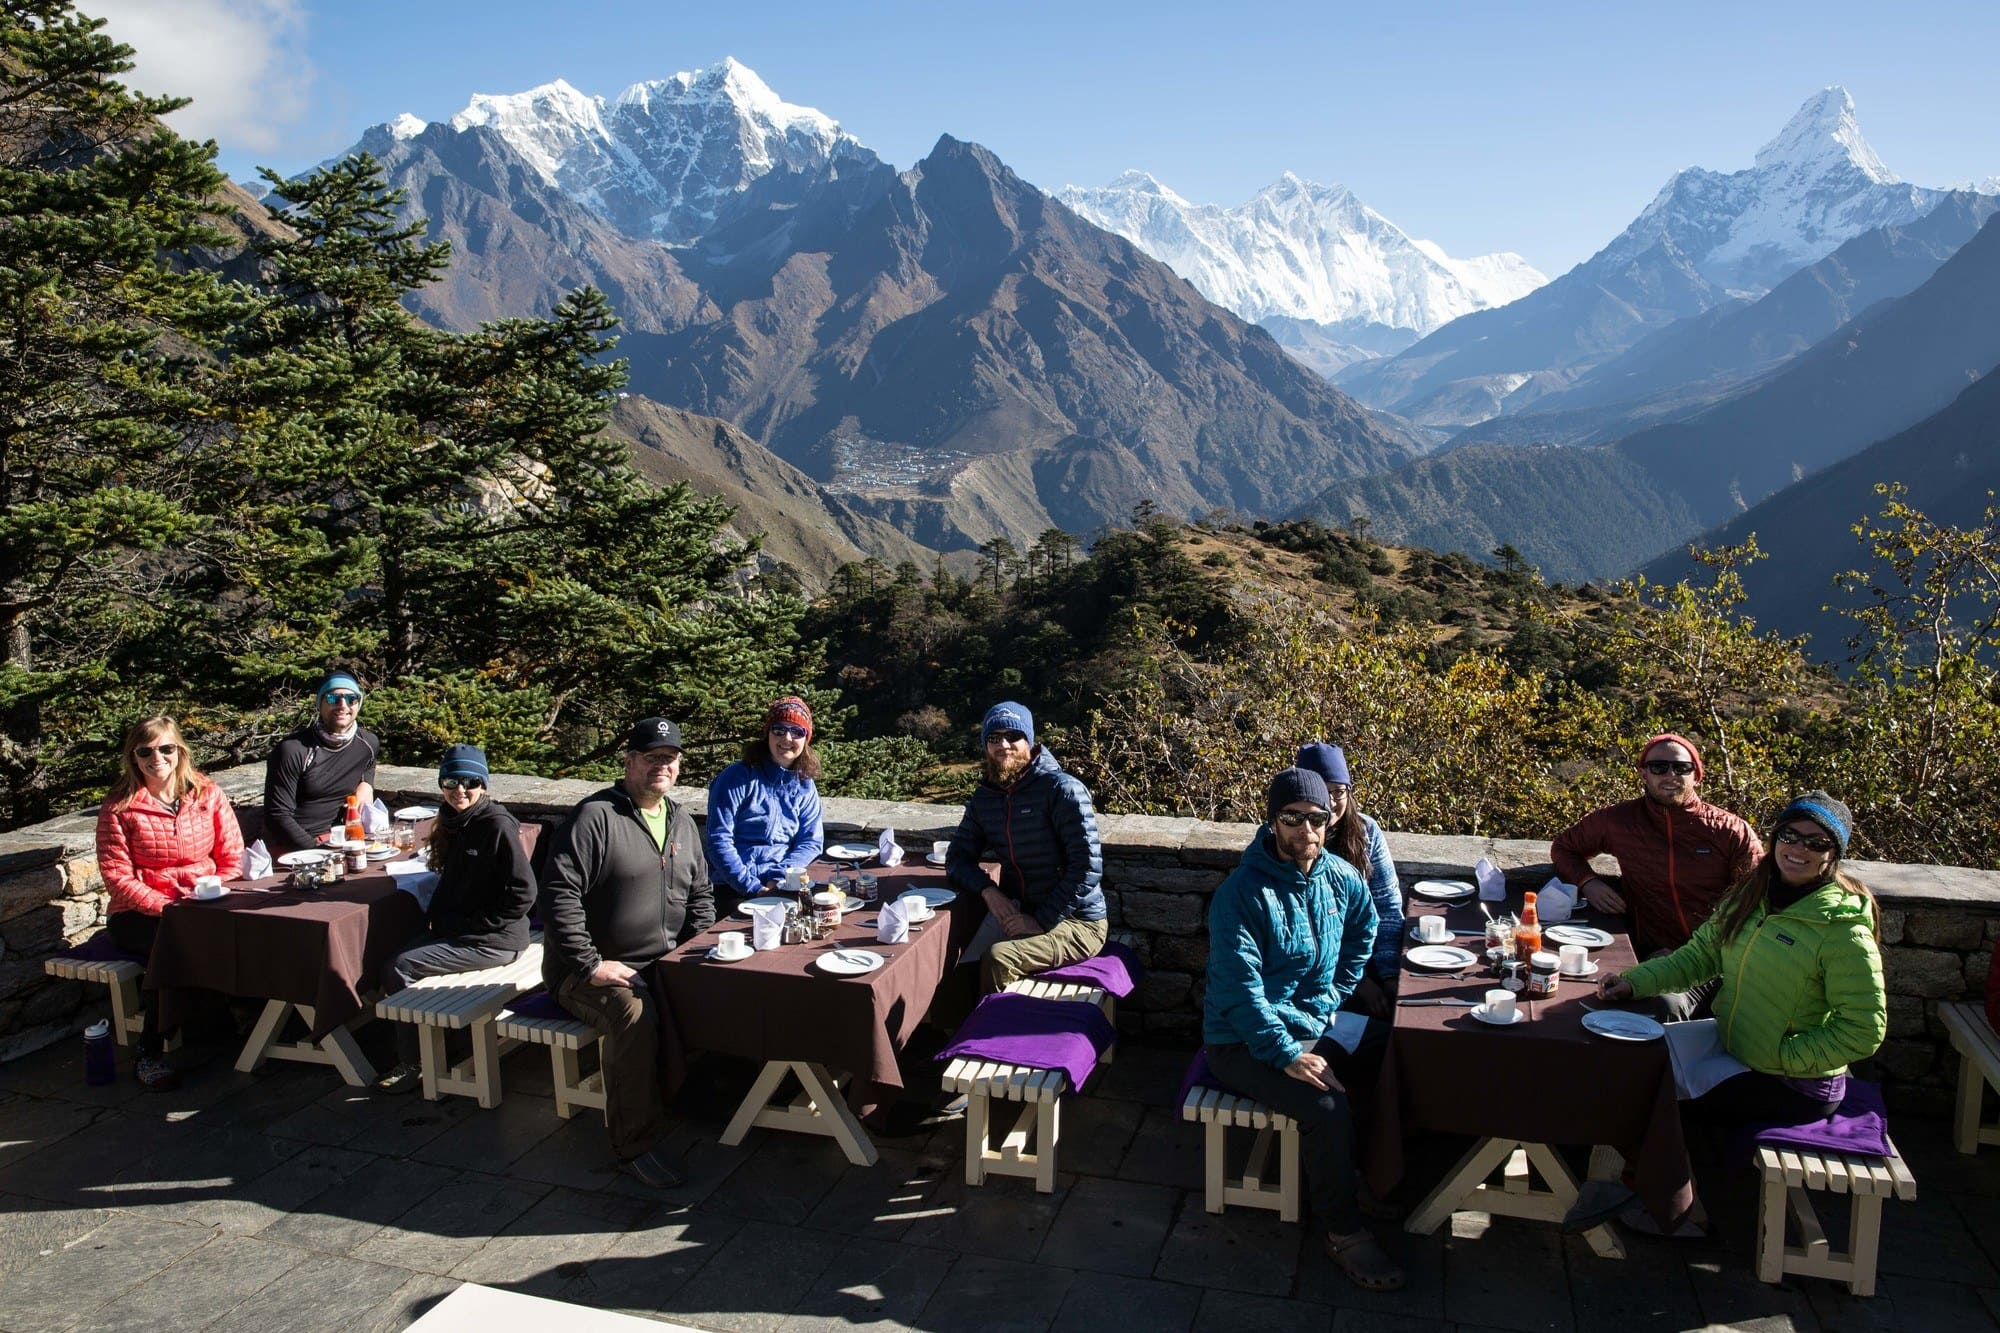 The most common Everest Base Camp trek questions answered! Learn all the logistics - guided vs independent, altitude sickness, transportation, gear & more. / Everest View Hotel